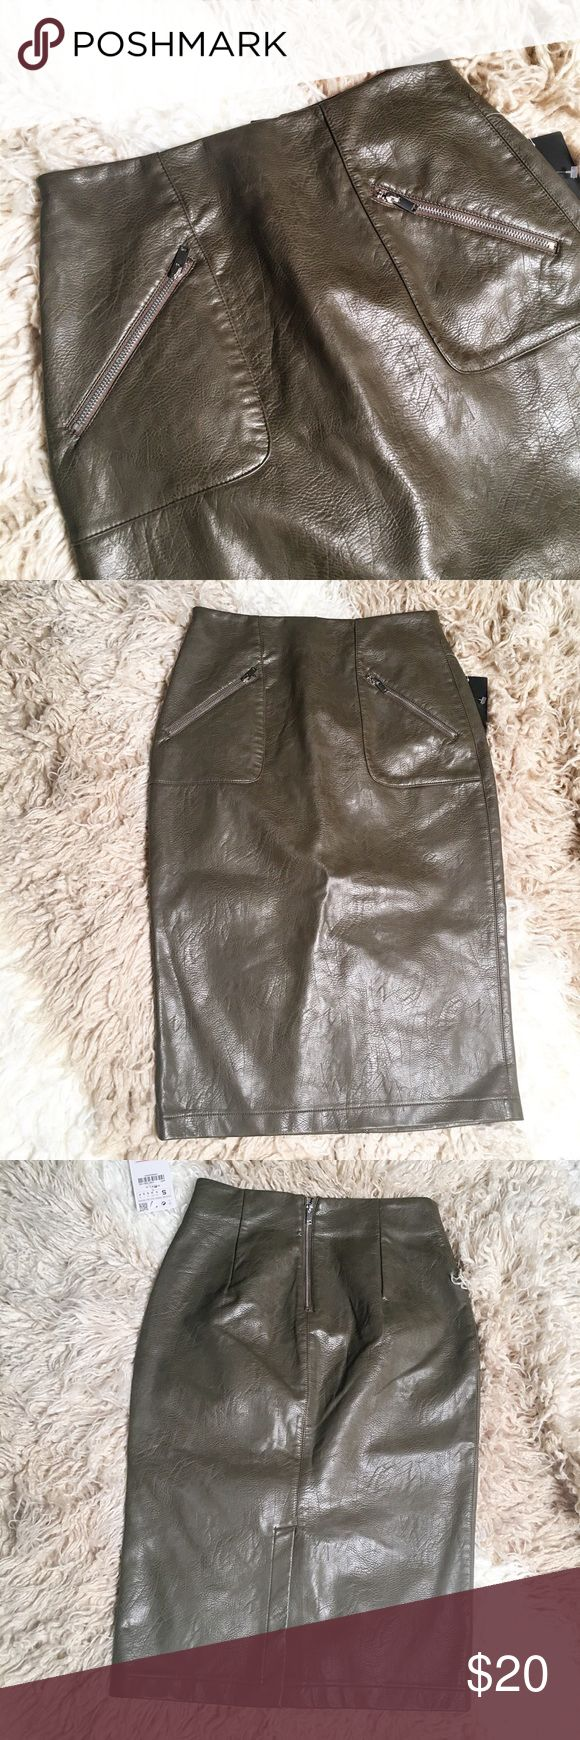 Zara Faux Leather Pencil Skirt Sz S NWT zipper pockets, cement like color or olive, slit in the back side. Waist measures 13 inches, hips approximately 15 inches and 26 inches in length. Zara Skirts Pencil